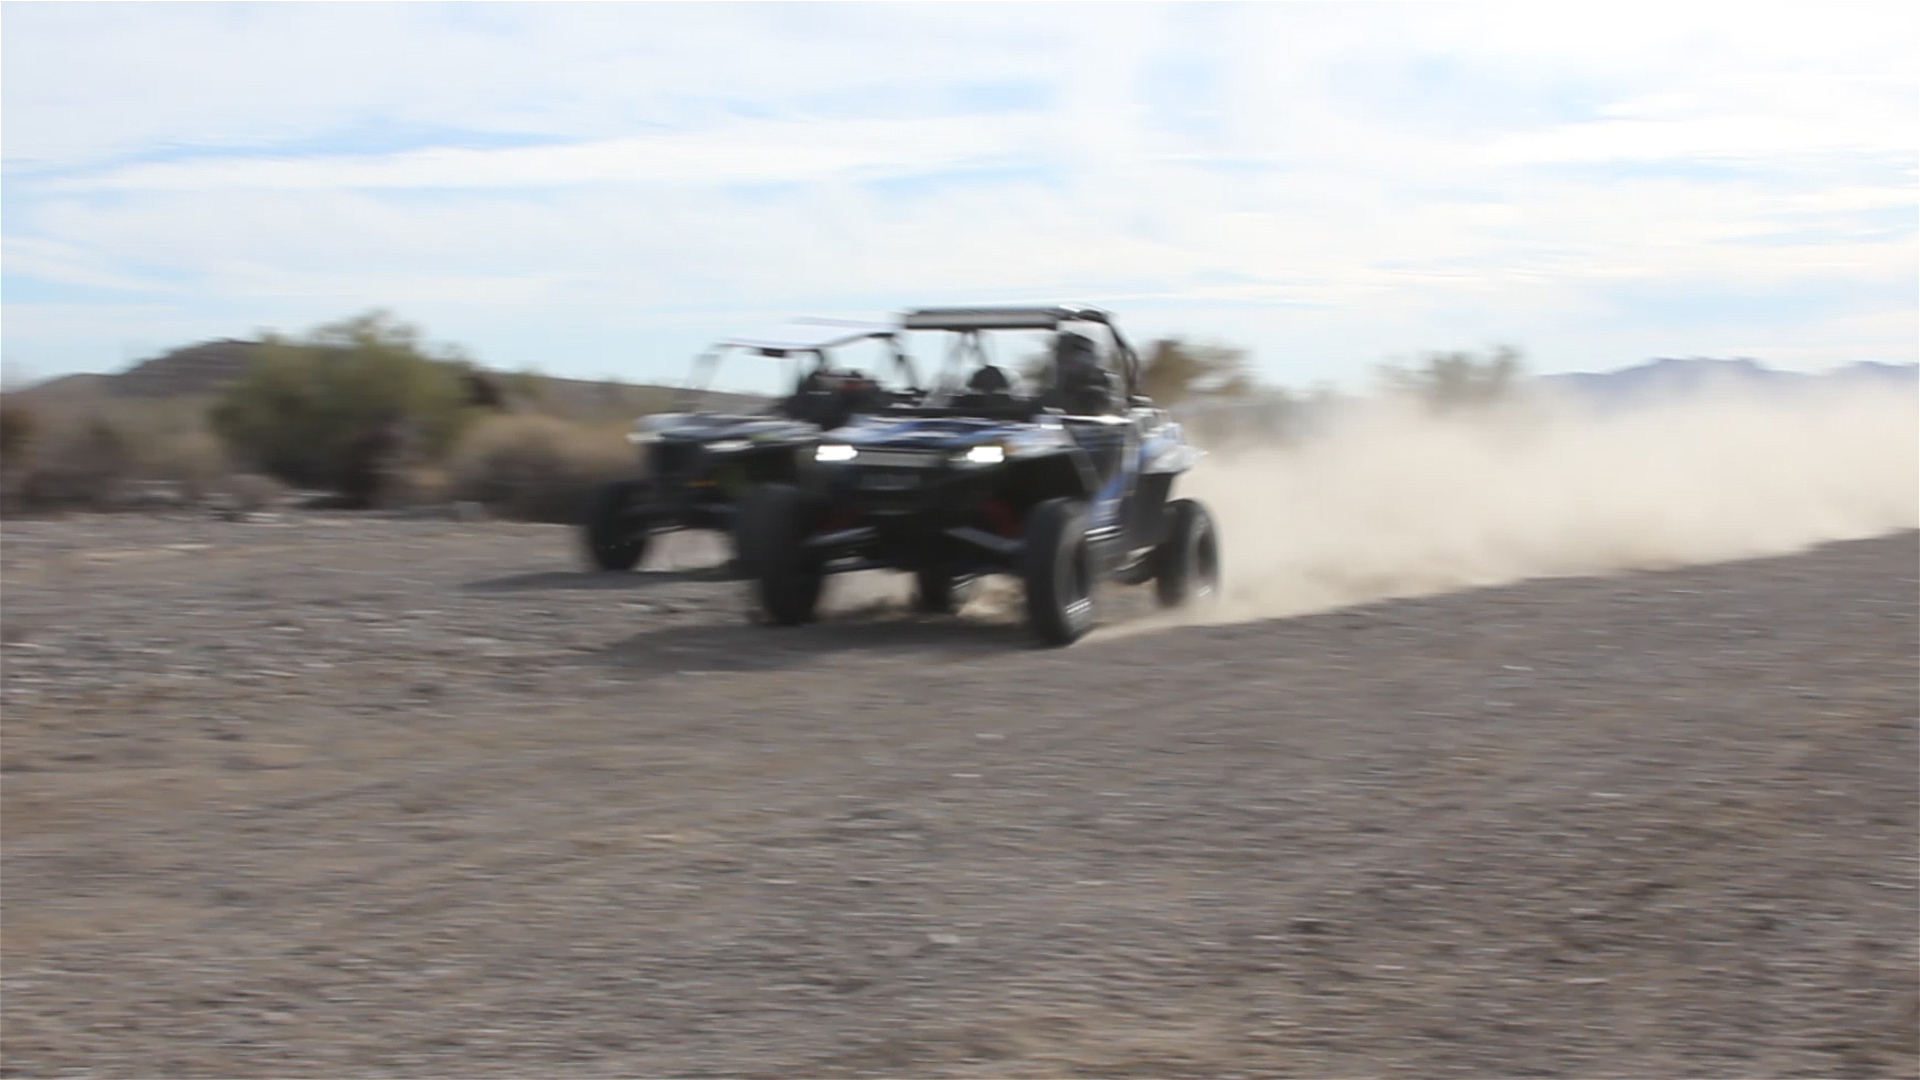 CT Racing RZR XP 900 High Output Motor Package Test: WITH VIDEO